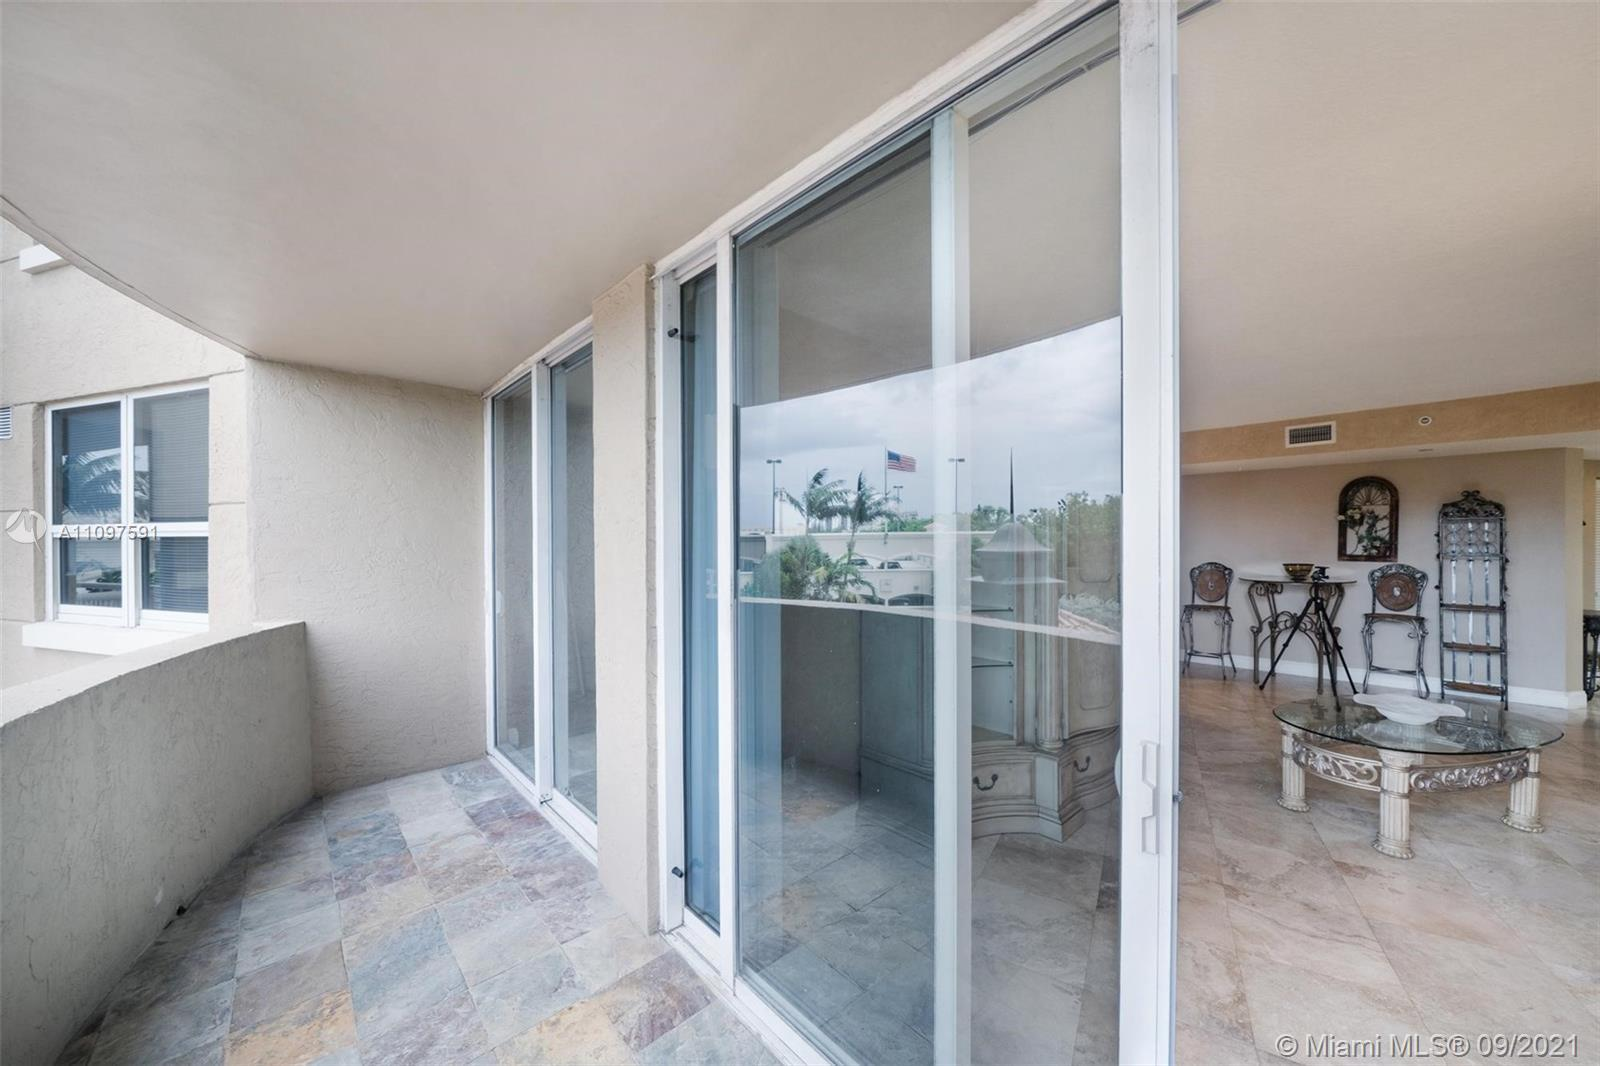 1 bed/1 bath 860 sqft FURNISHED in the heart of Aventura, NW sunset views in tropical foliage, in un